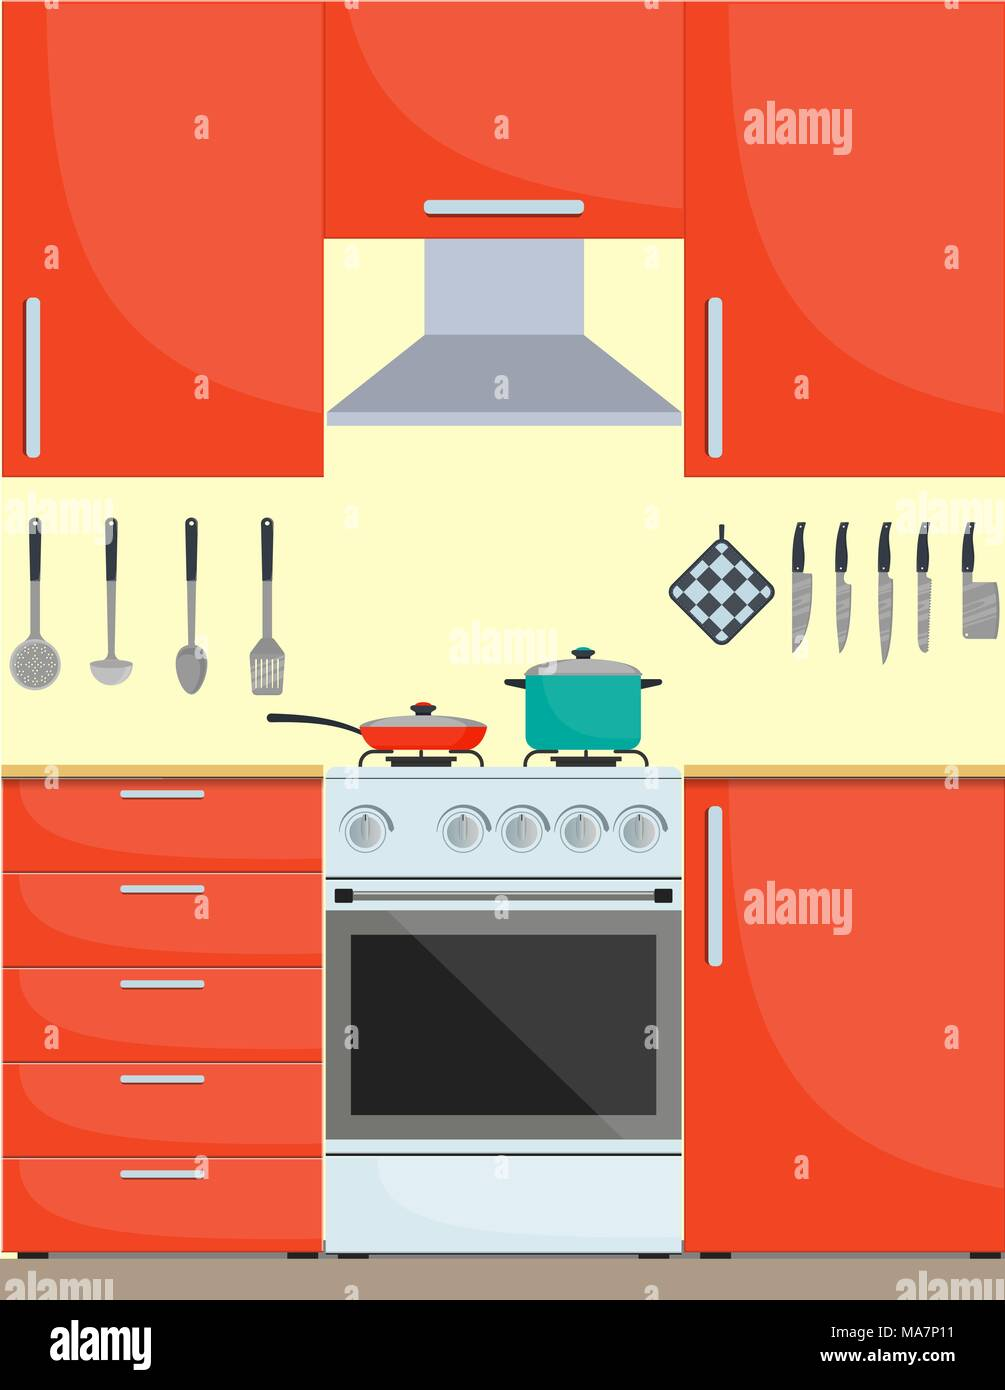 Modern Stylish Kitchen Interior. Kitchen Utensils And Appliances,  Furniture, Gas Stove. Pan And Frying Pan On The Stove. Vector Illustration  In Flat S